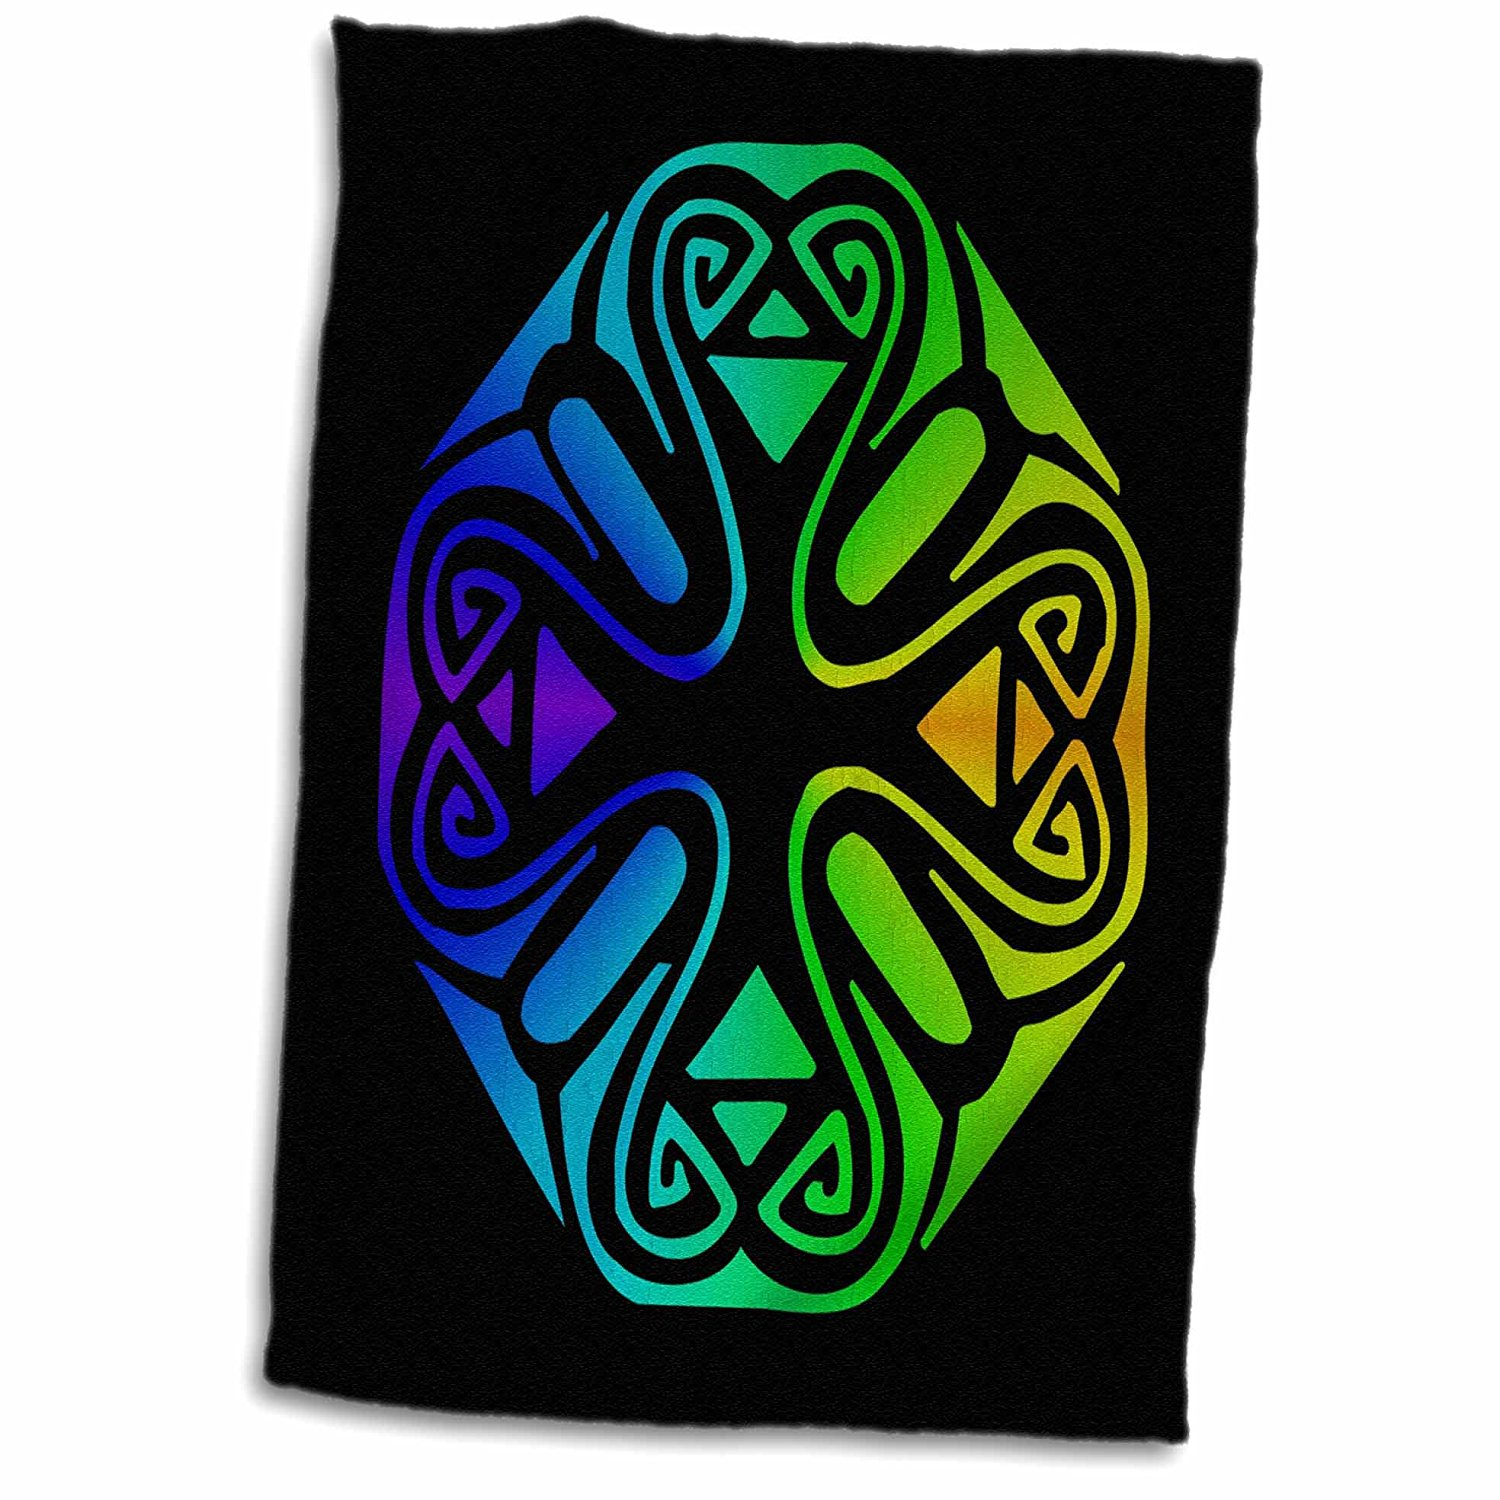 3dRose Russ Billington Designs - Abstract Geometric Motif in Yellow Green Purple and Blue - 15x22 Hand Towel (twl_262222_1)